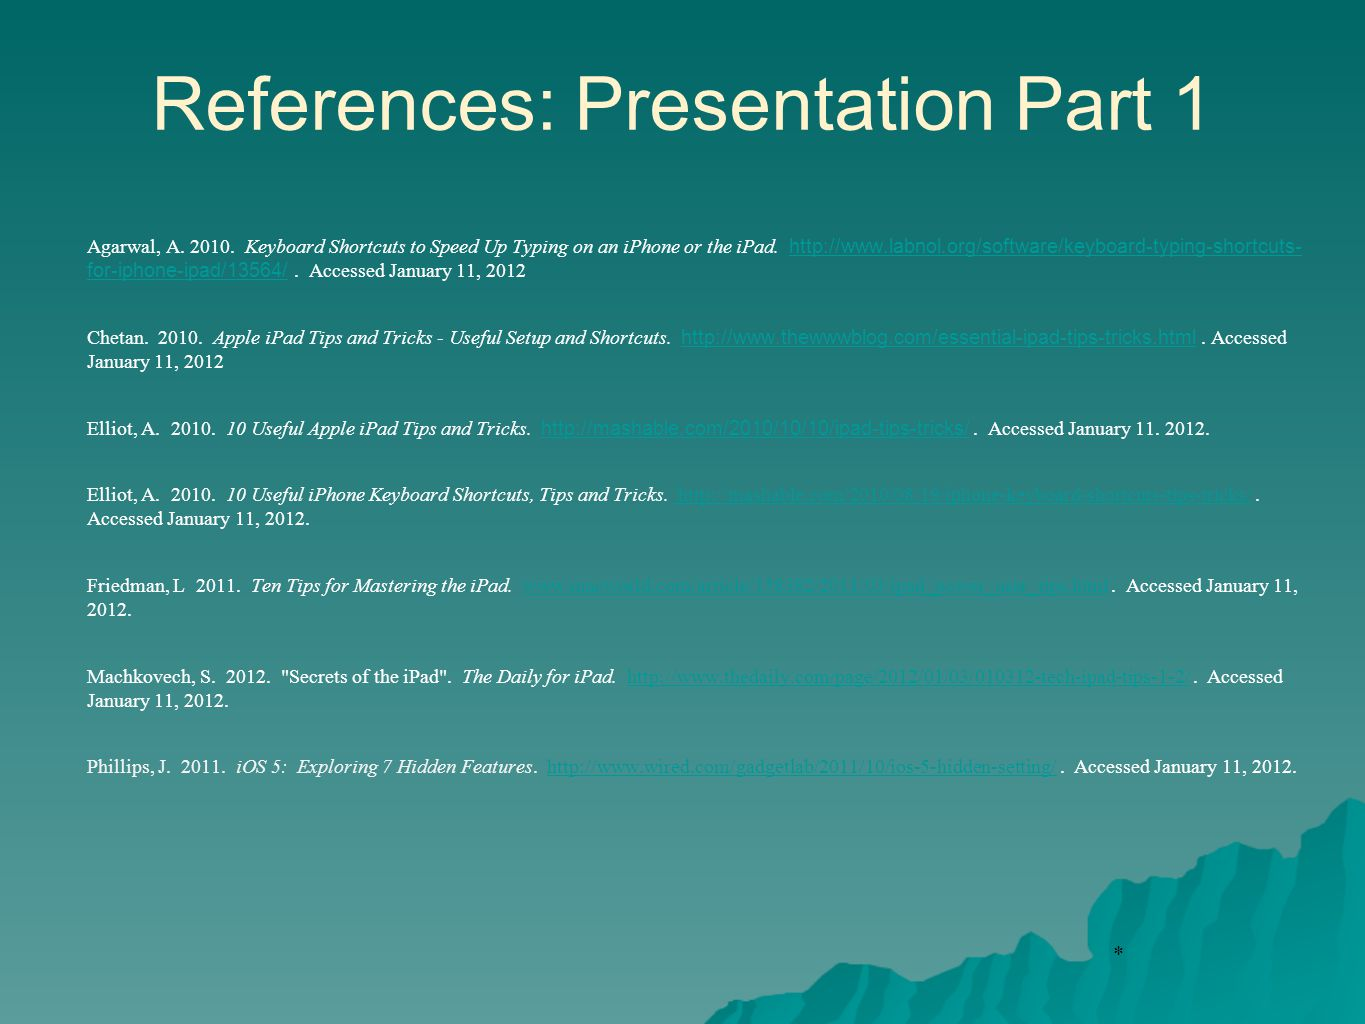 * References: Presentation Part 1 Agarwal, A. 2010. Keyboard Shortcuts to Speed Up Typing on an iPhone or the iPad. http://www.labnol.org/software/key